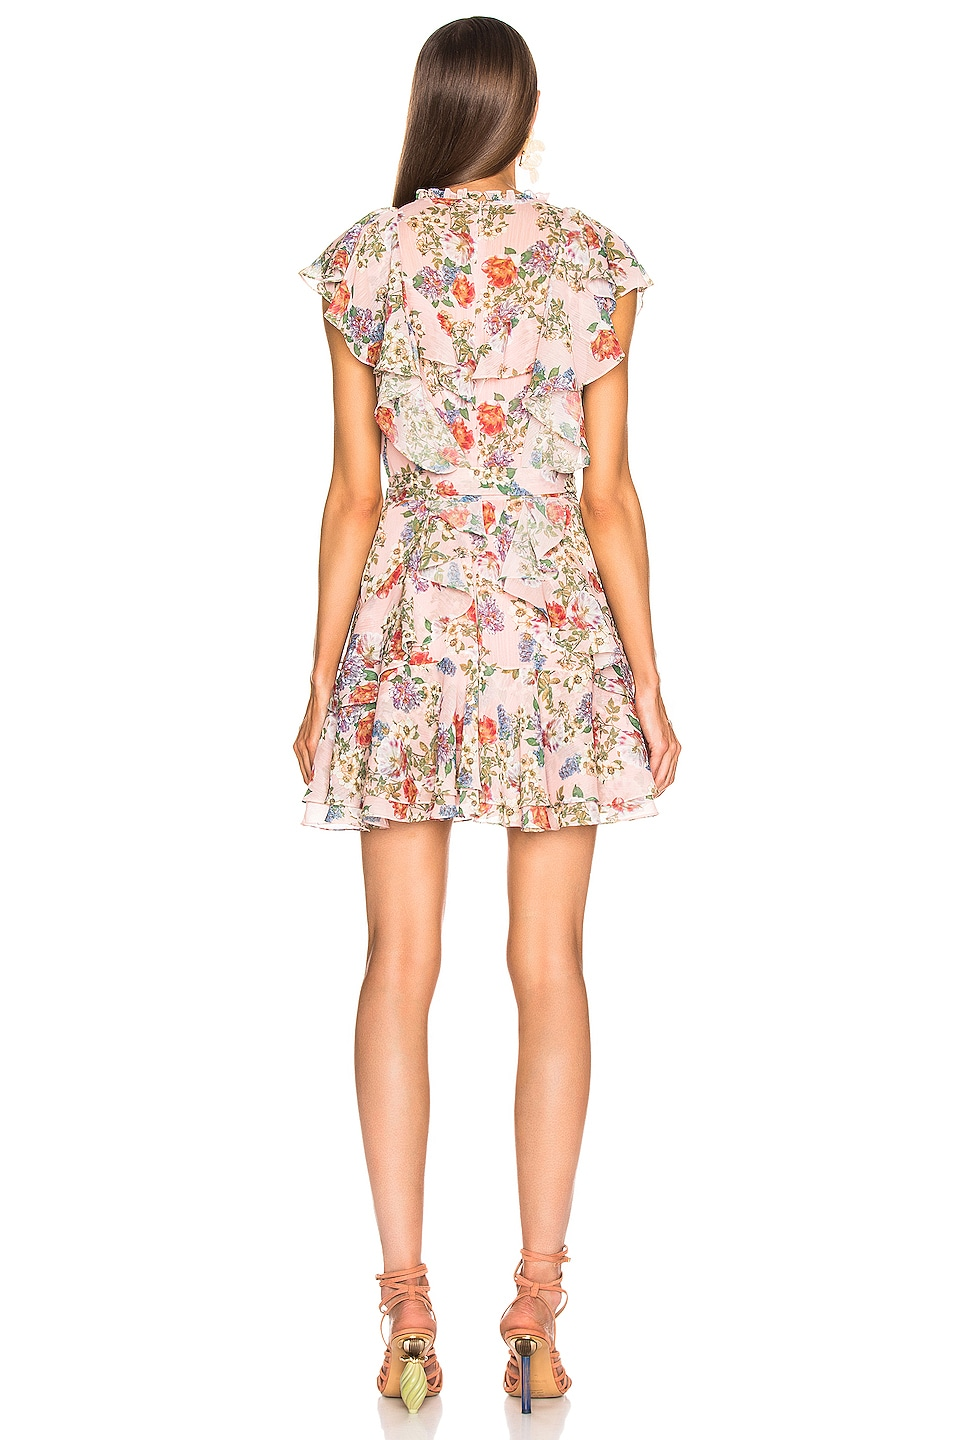 Image 3 of Marissa Webb Sully Mini Dress in Dusty Rose English Bouquet